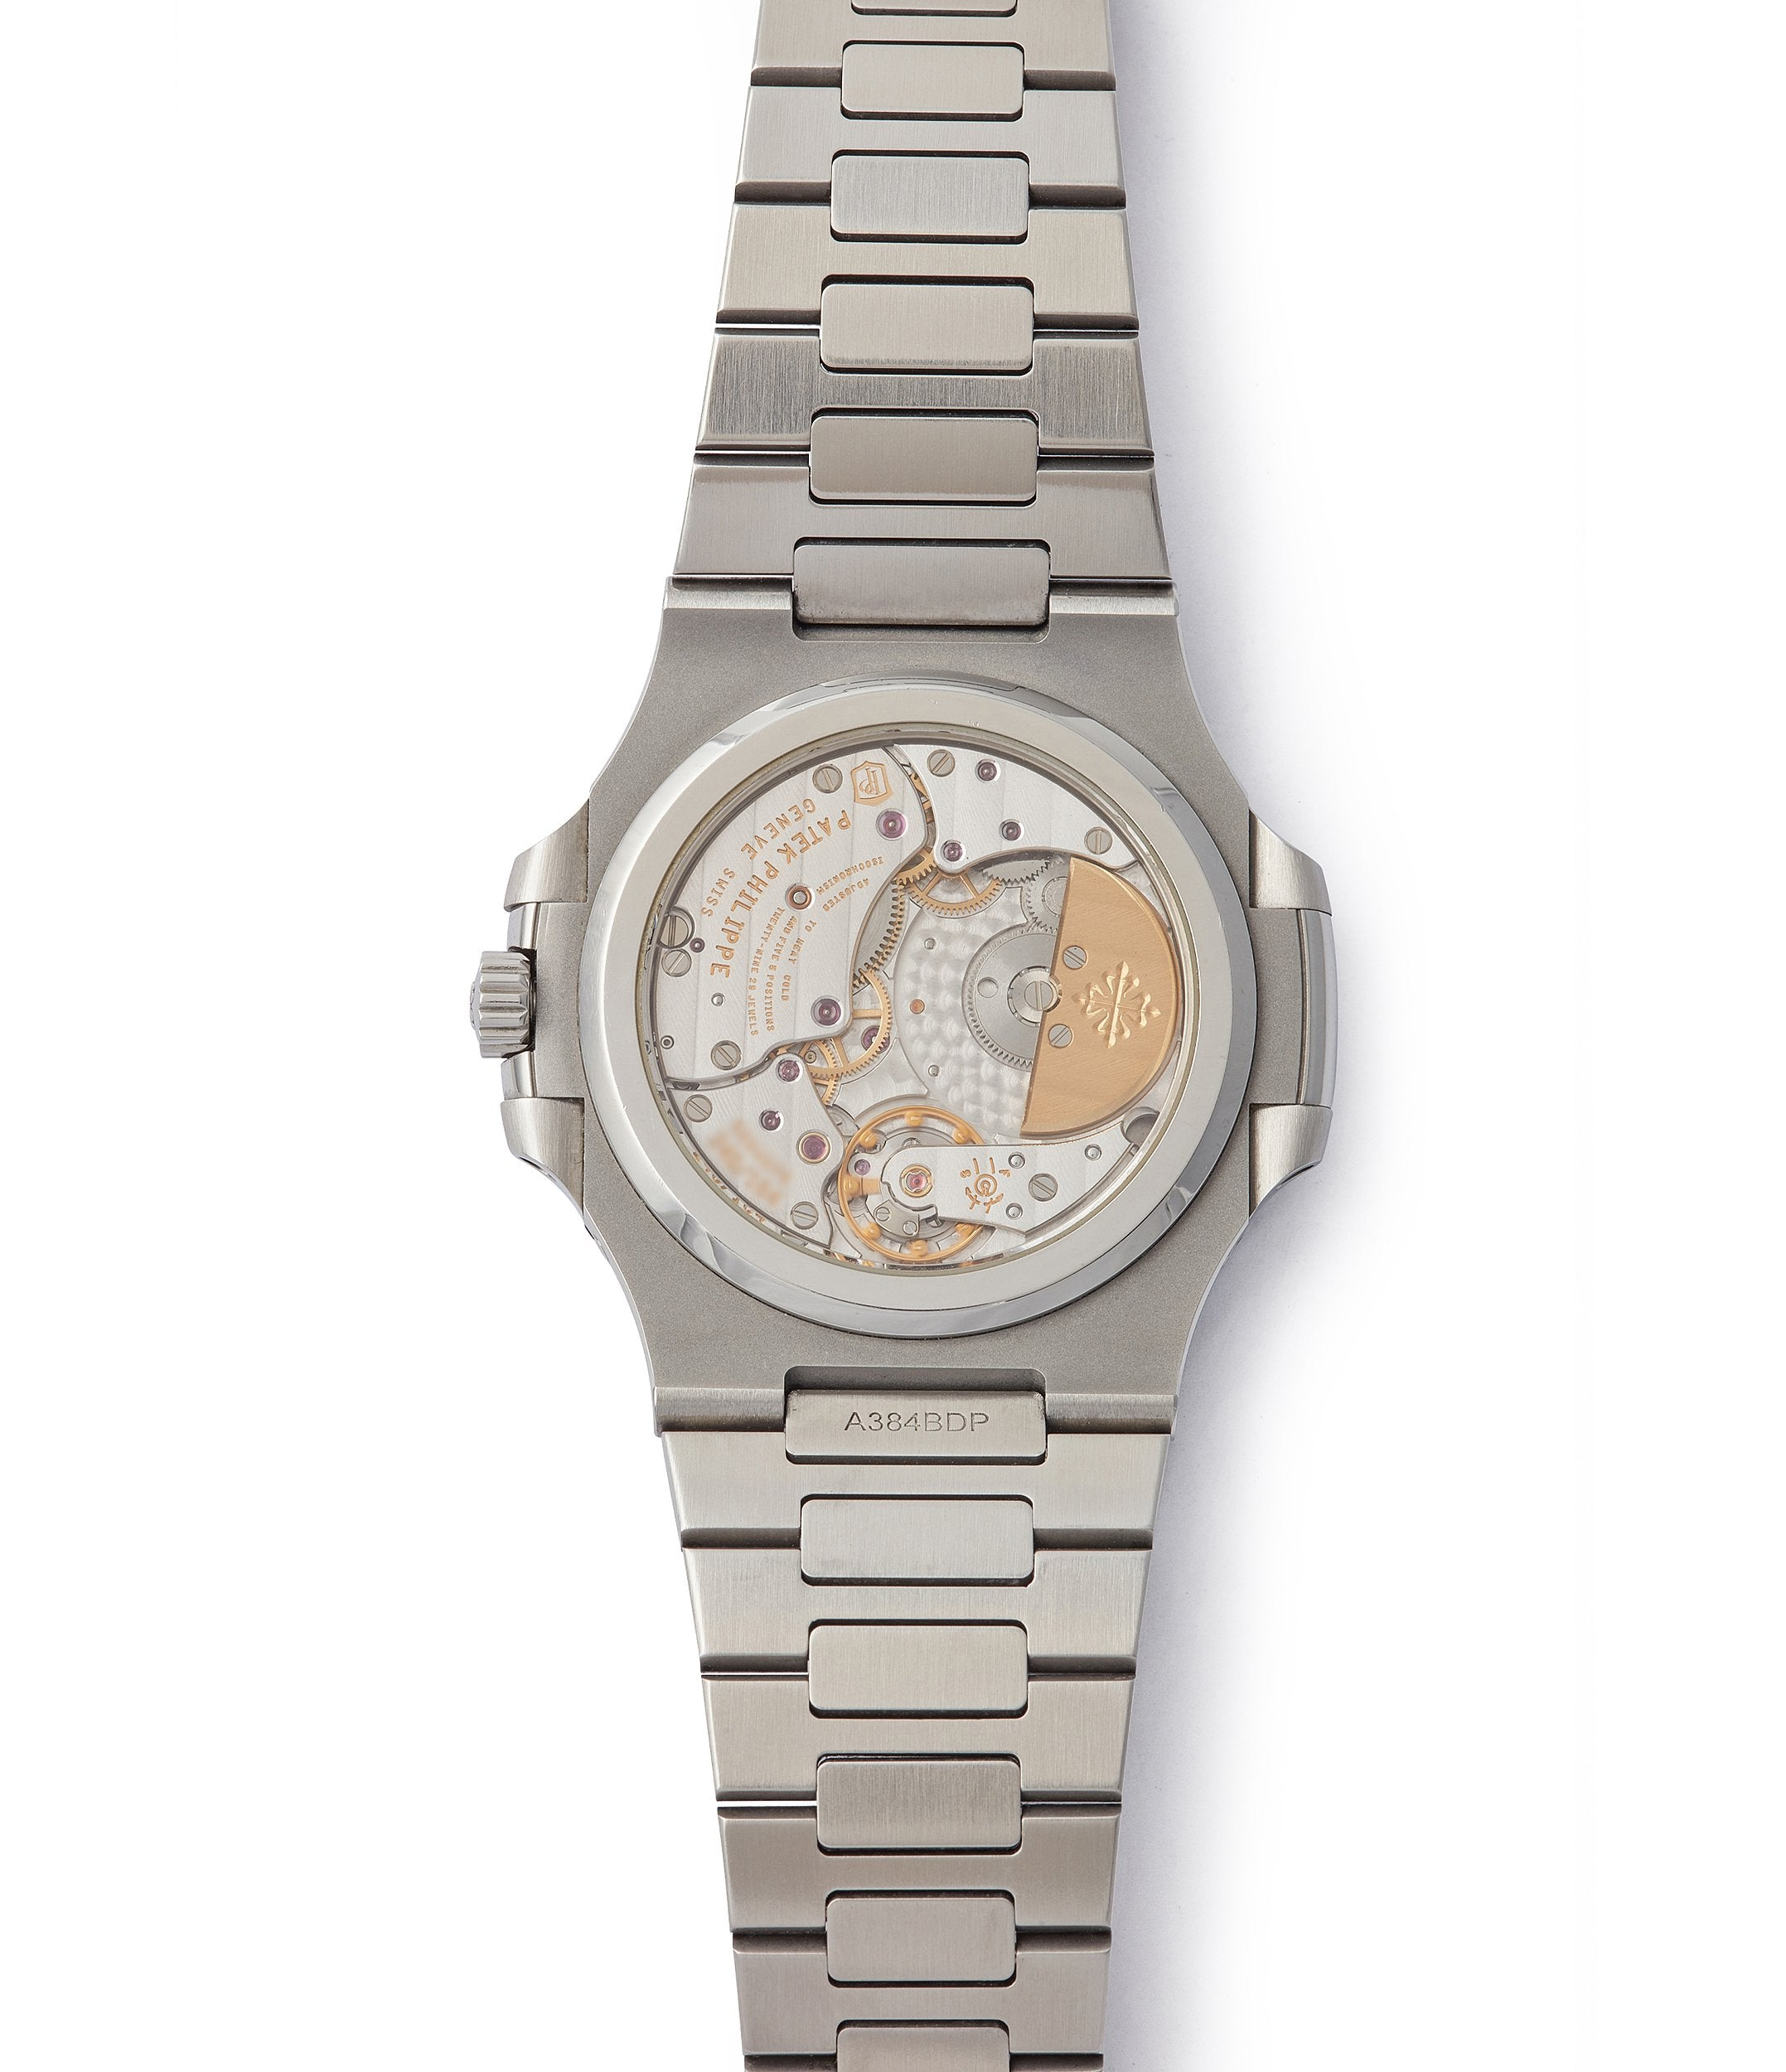 Calibre 240 PS automatic Patek Philippe Nautilus 5712/1A-001 steel moon phase luxury sports watch for sale online A Collected Man London UK specialist rare watches